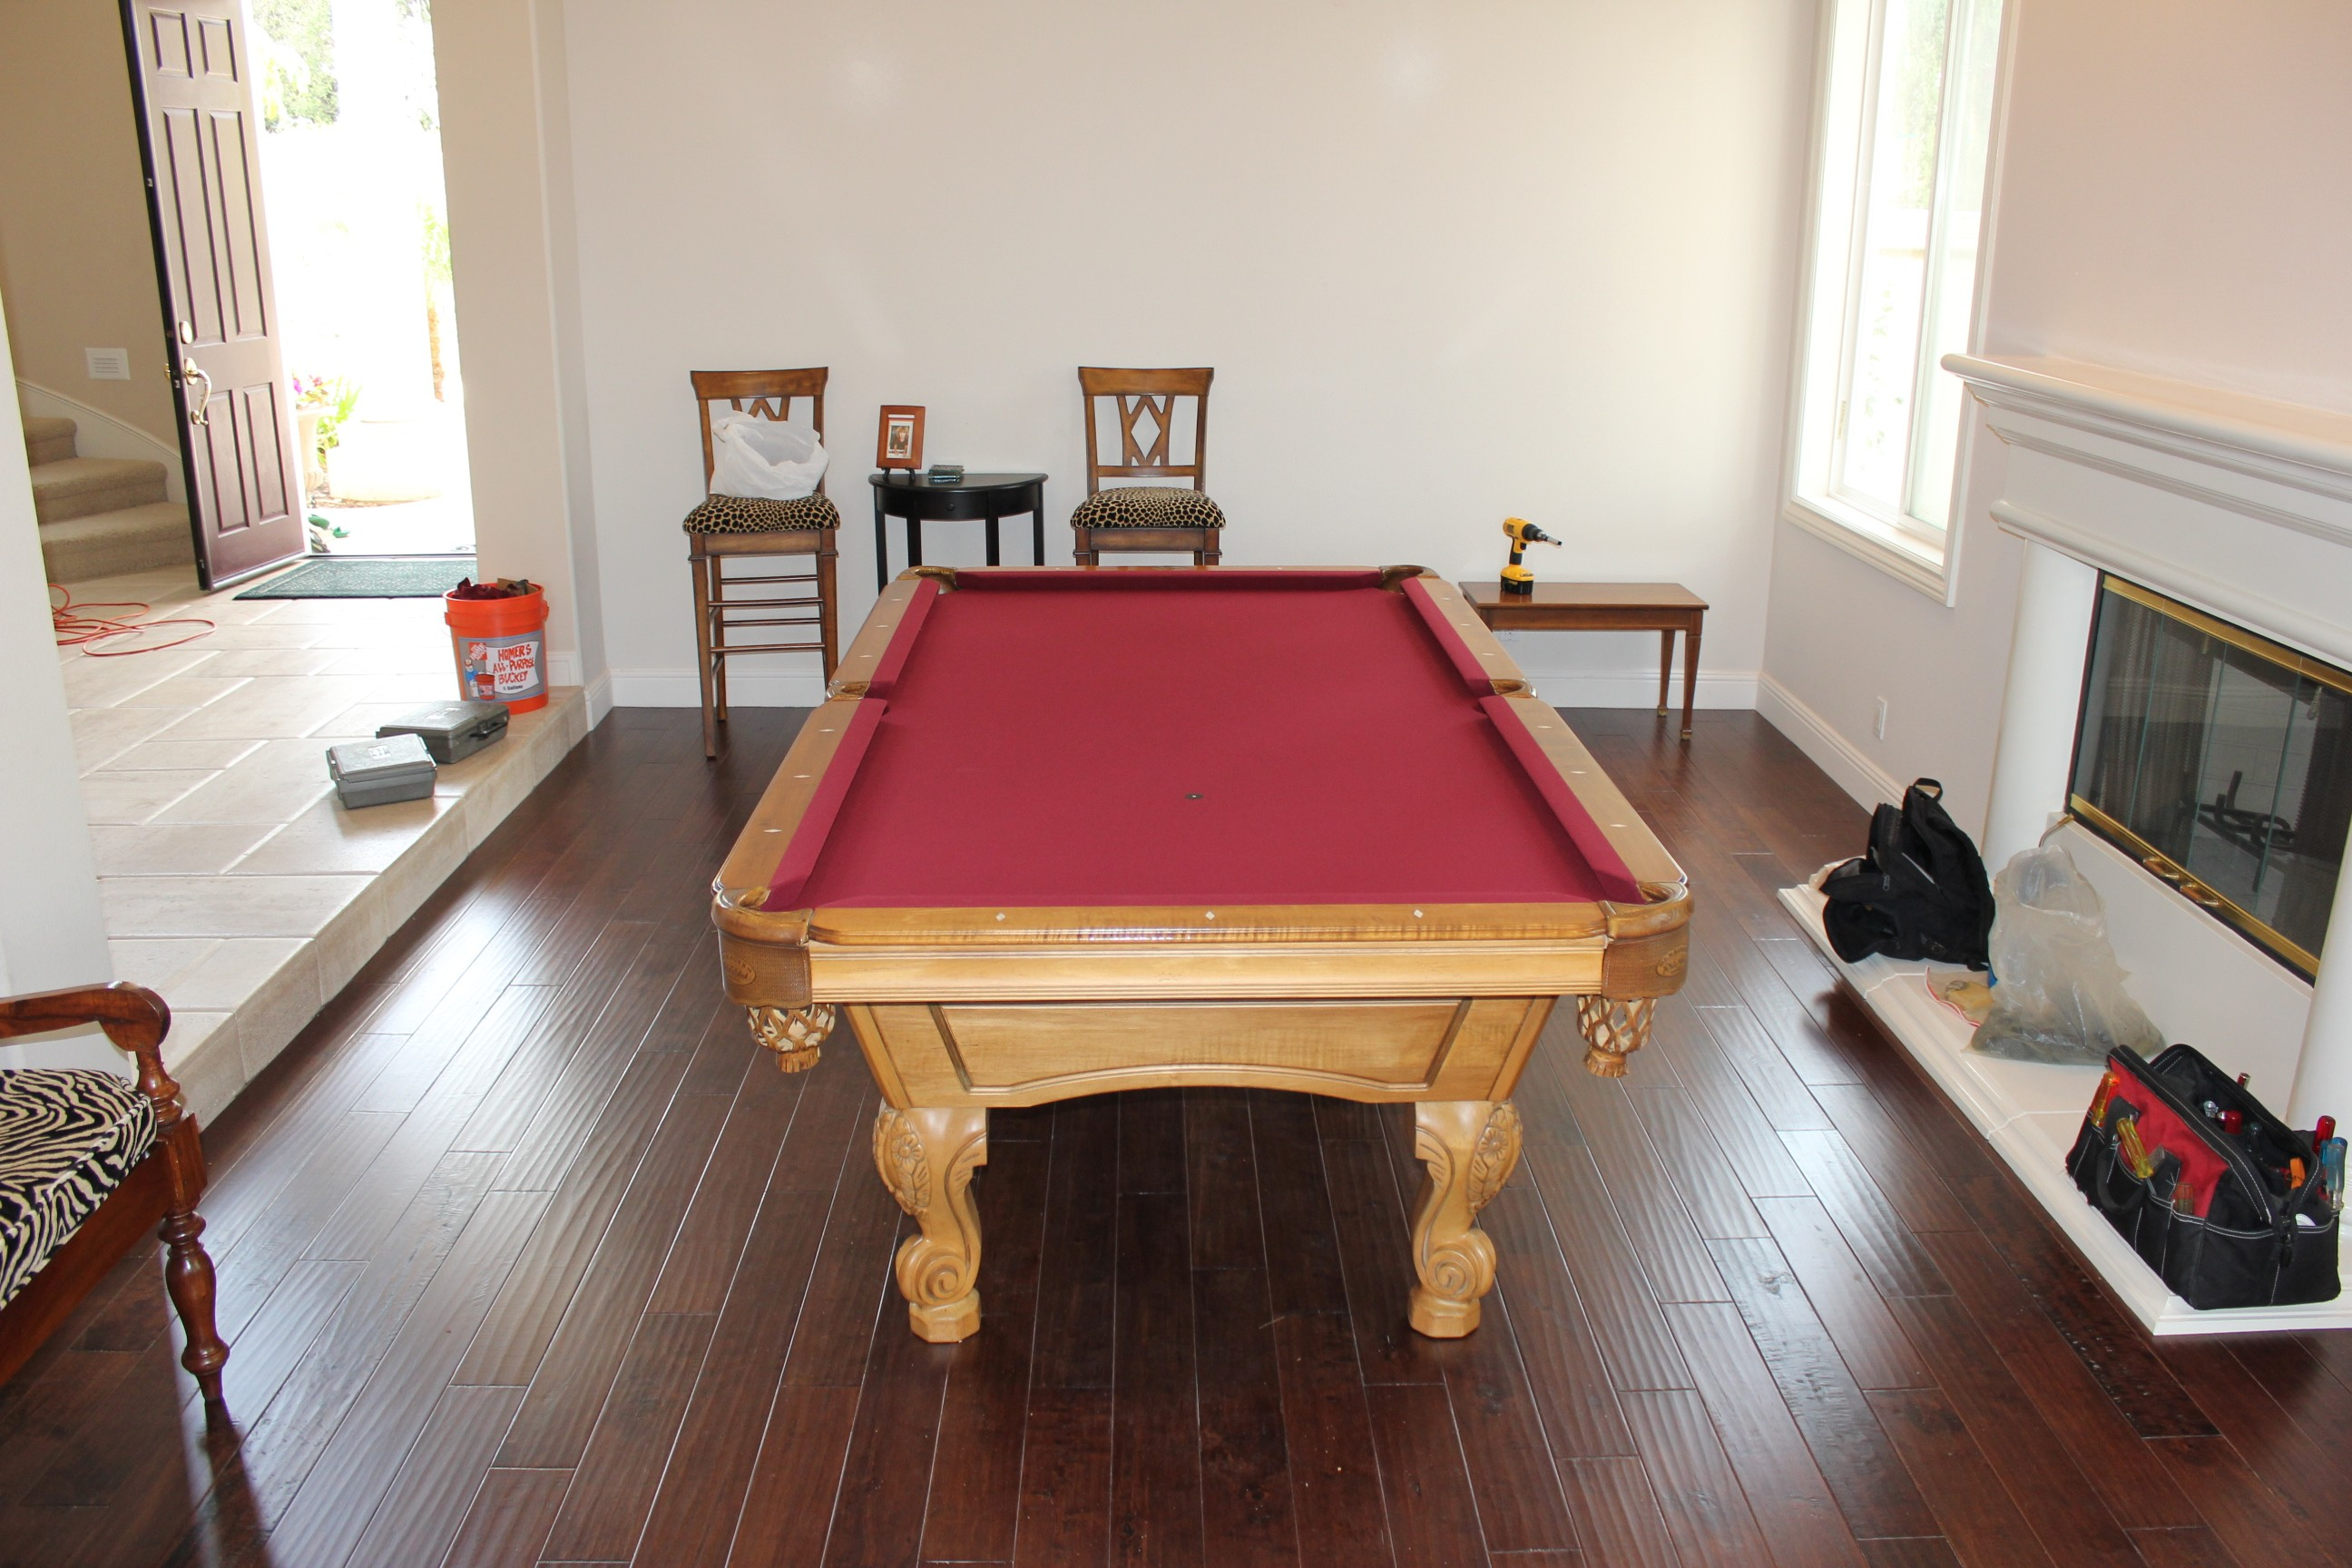 Whats The Best Size Pool Table To Have